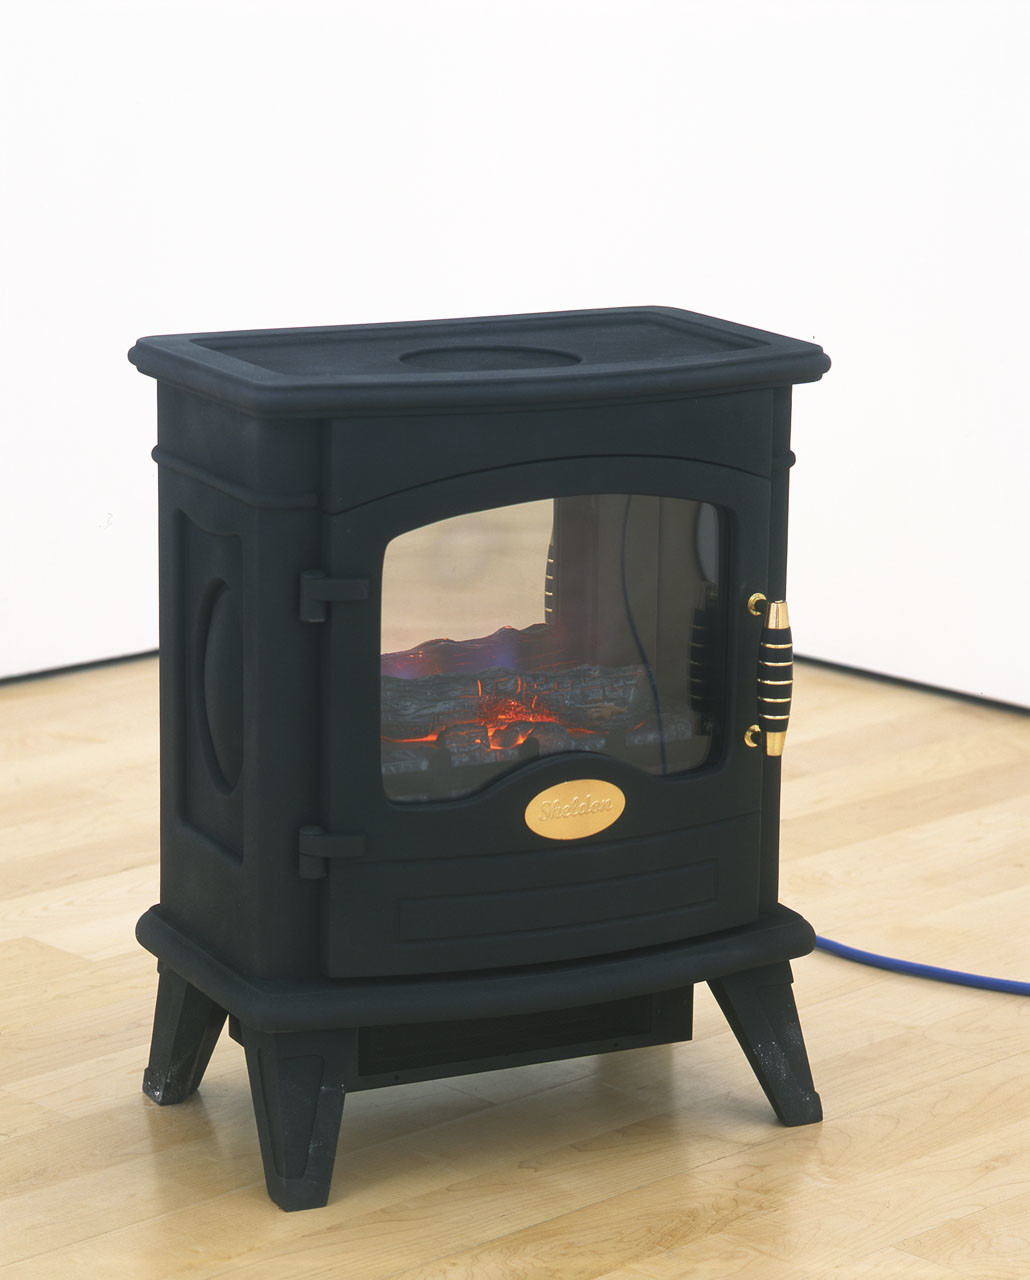 <p>Electric stove, 2003</p>